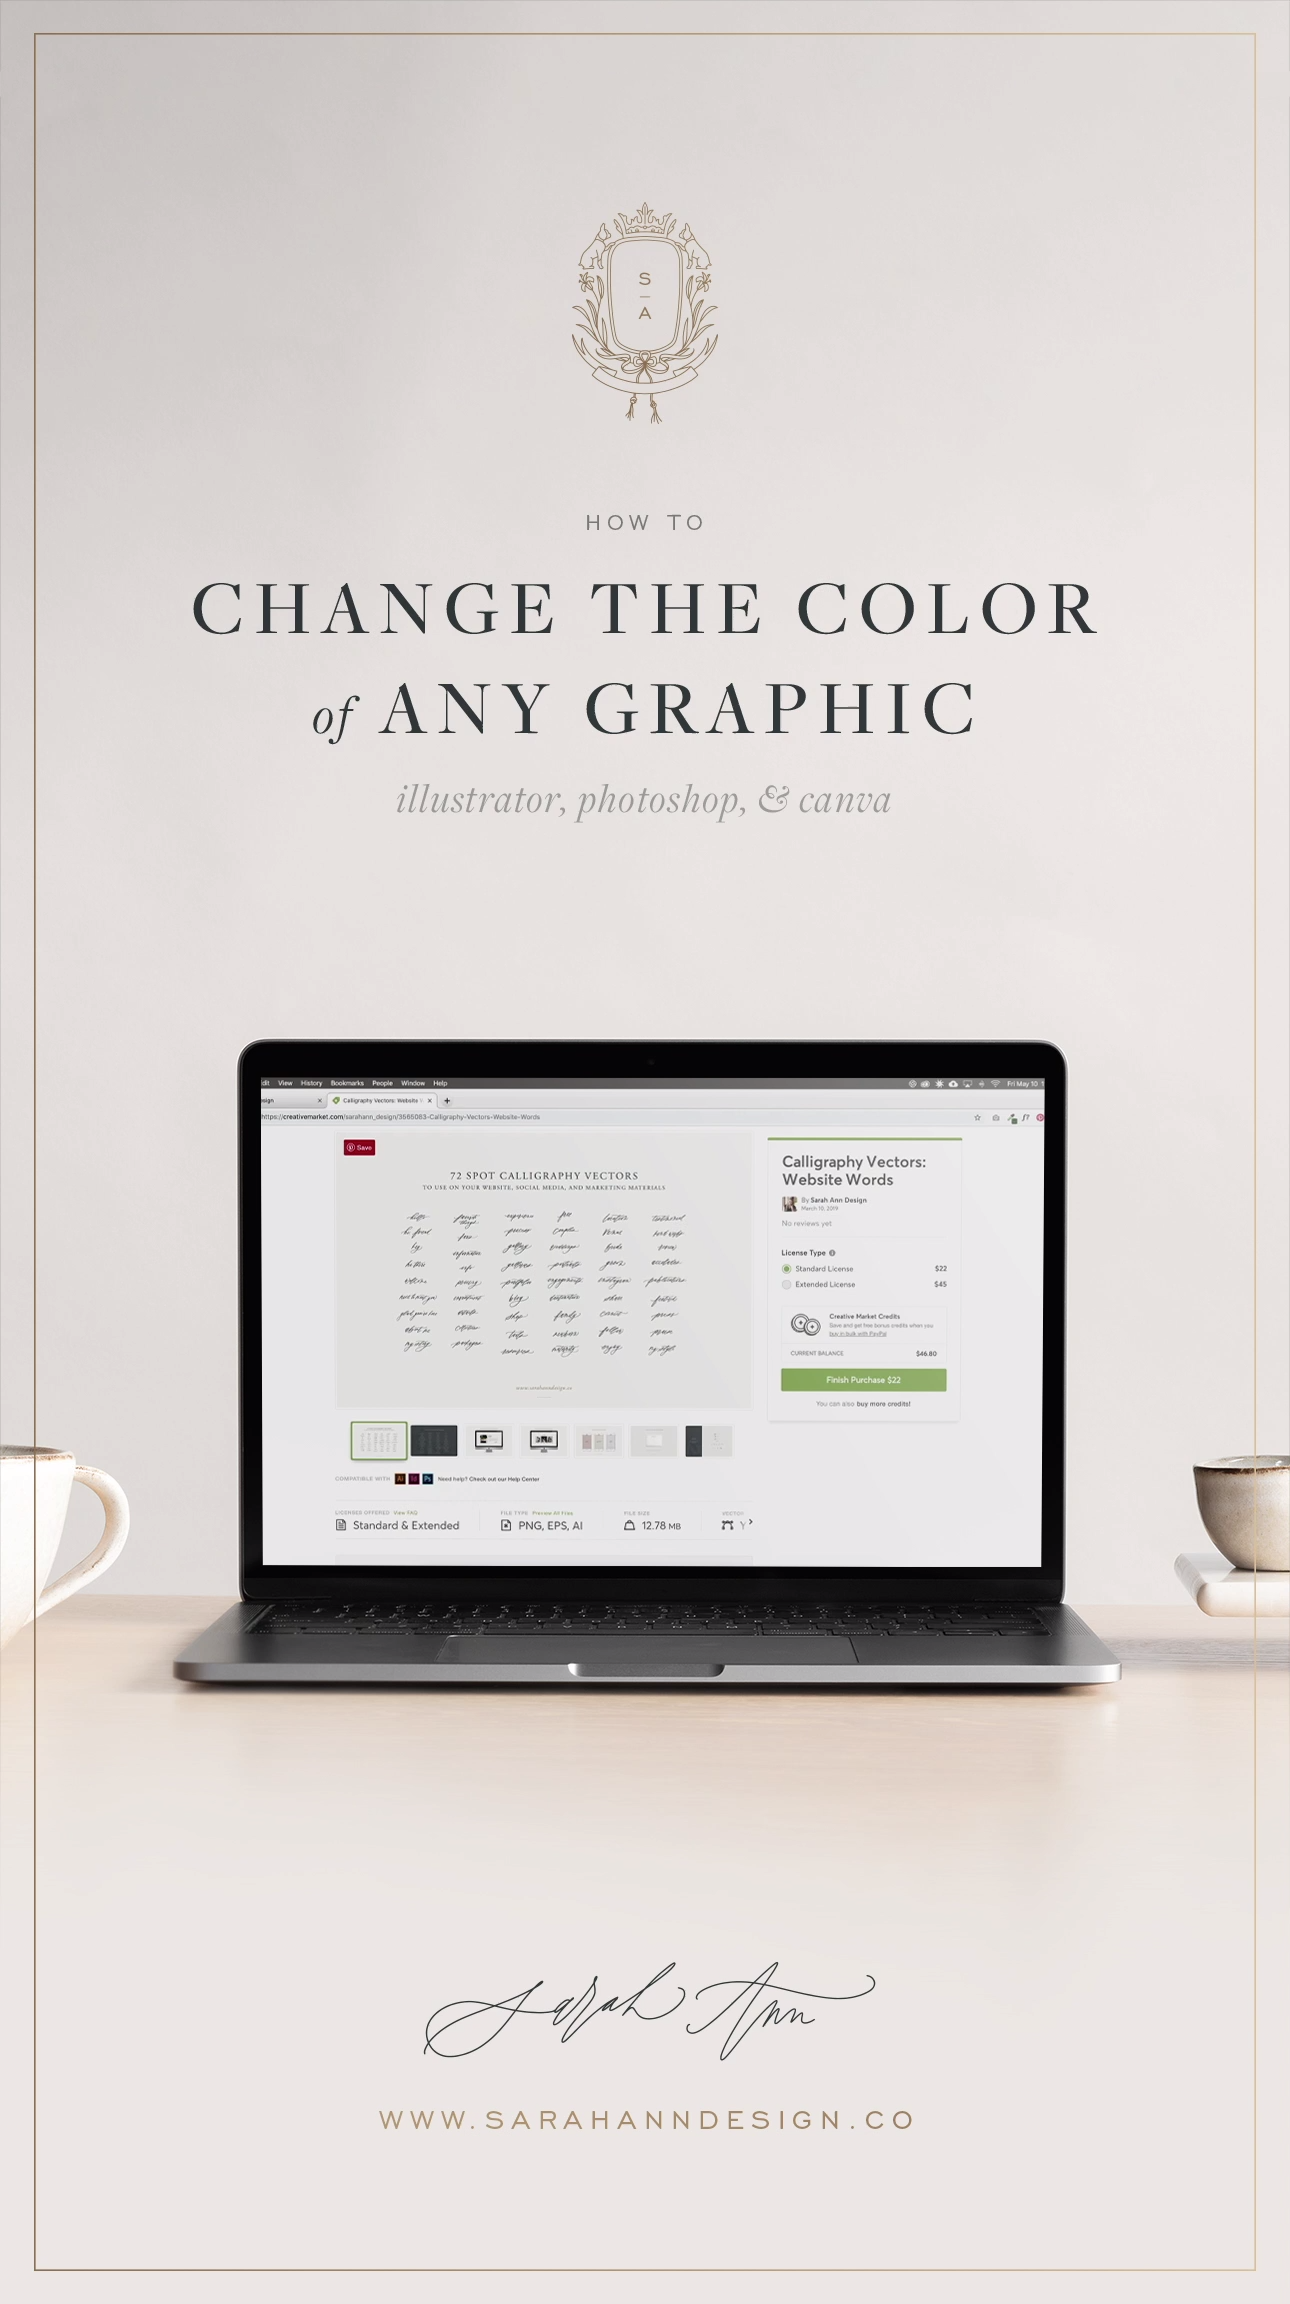 How To Change The Color Of A Graphic Illustrator Photoshop Or Canva Video Video Photoshop Photoshop Video Tutorials Photoshop For Photographers